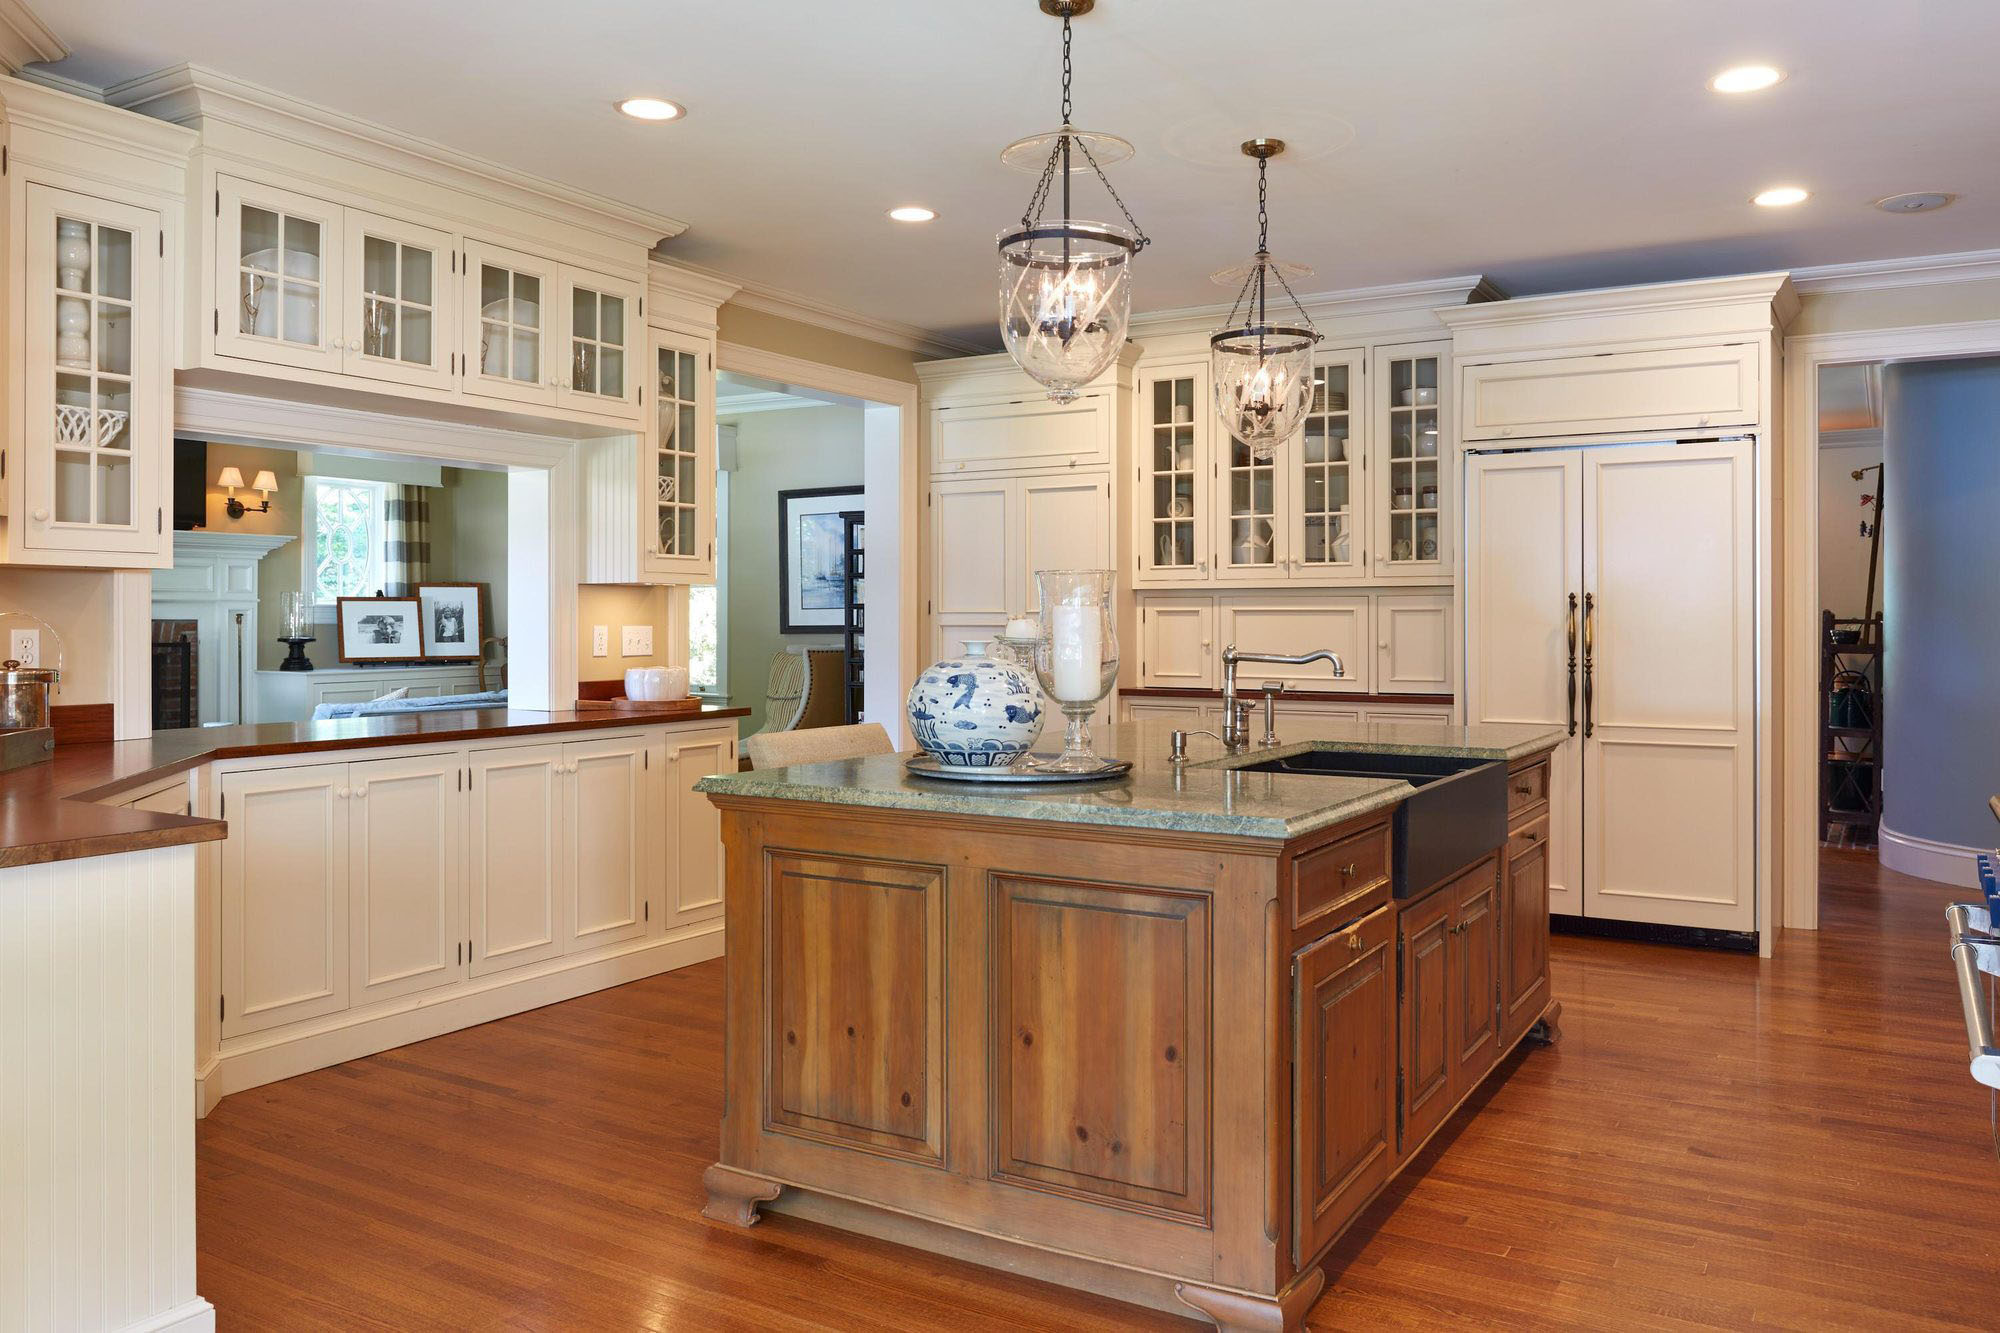 Country style kitchen with cream cabinets and stained wood island. granite countertops. stone sink.